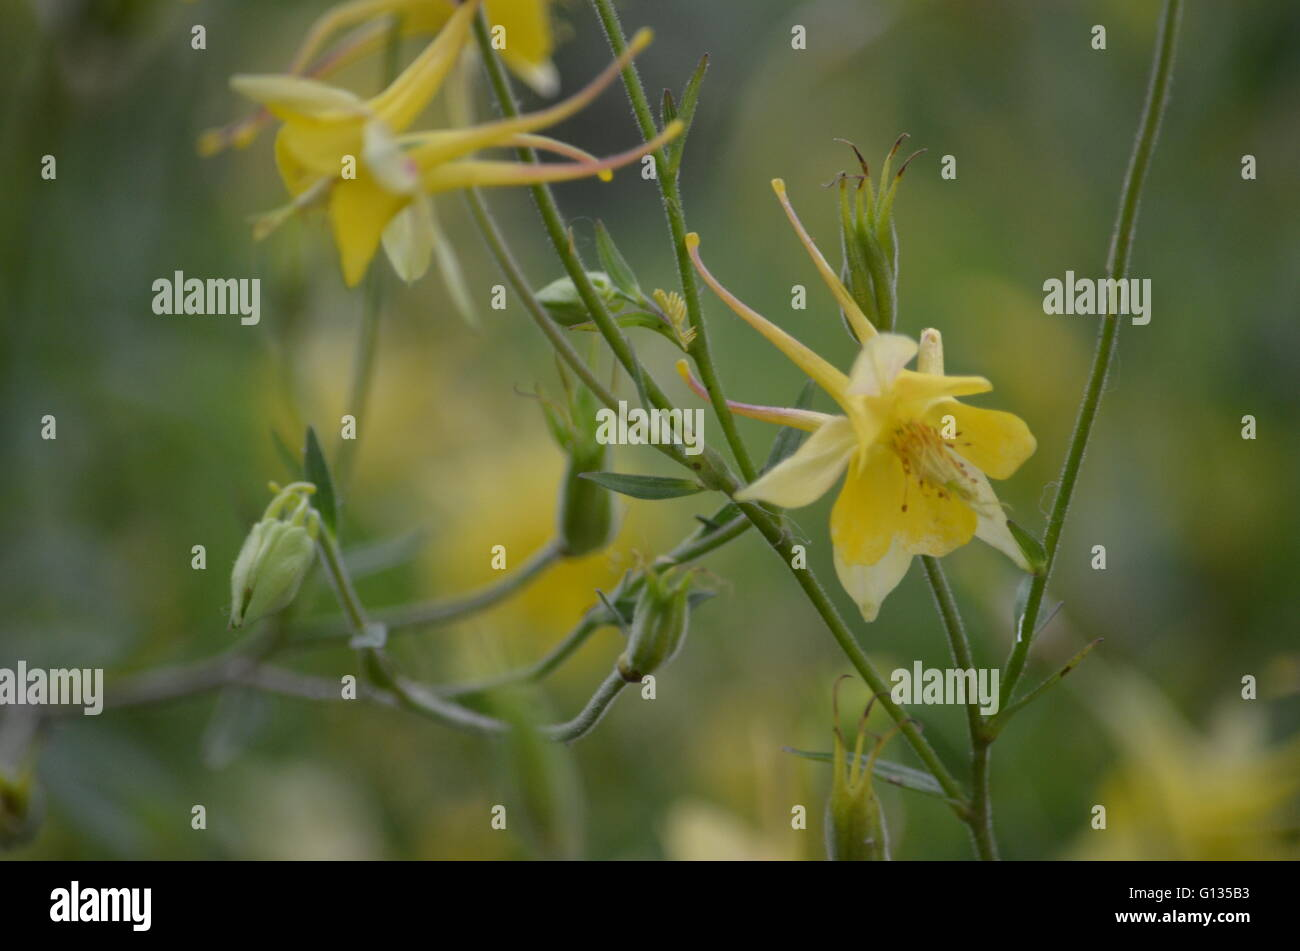 Golden columbine flower stock photos golden columbine flower stock golden columbine aquilegia chysantha flower stock image izmirmasajfo